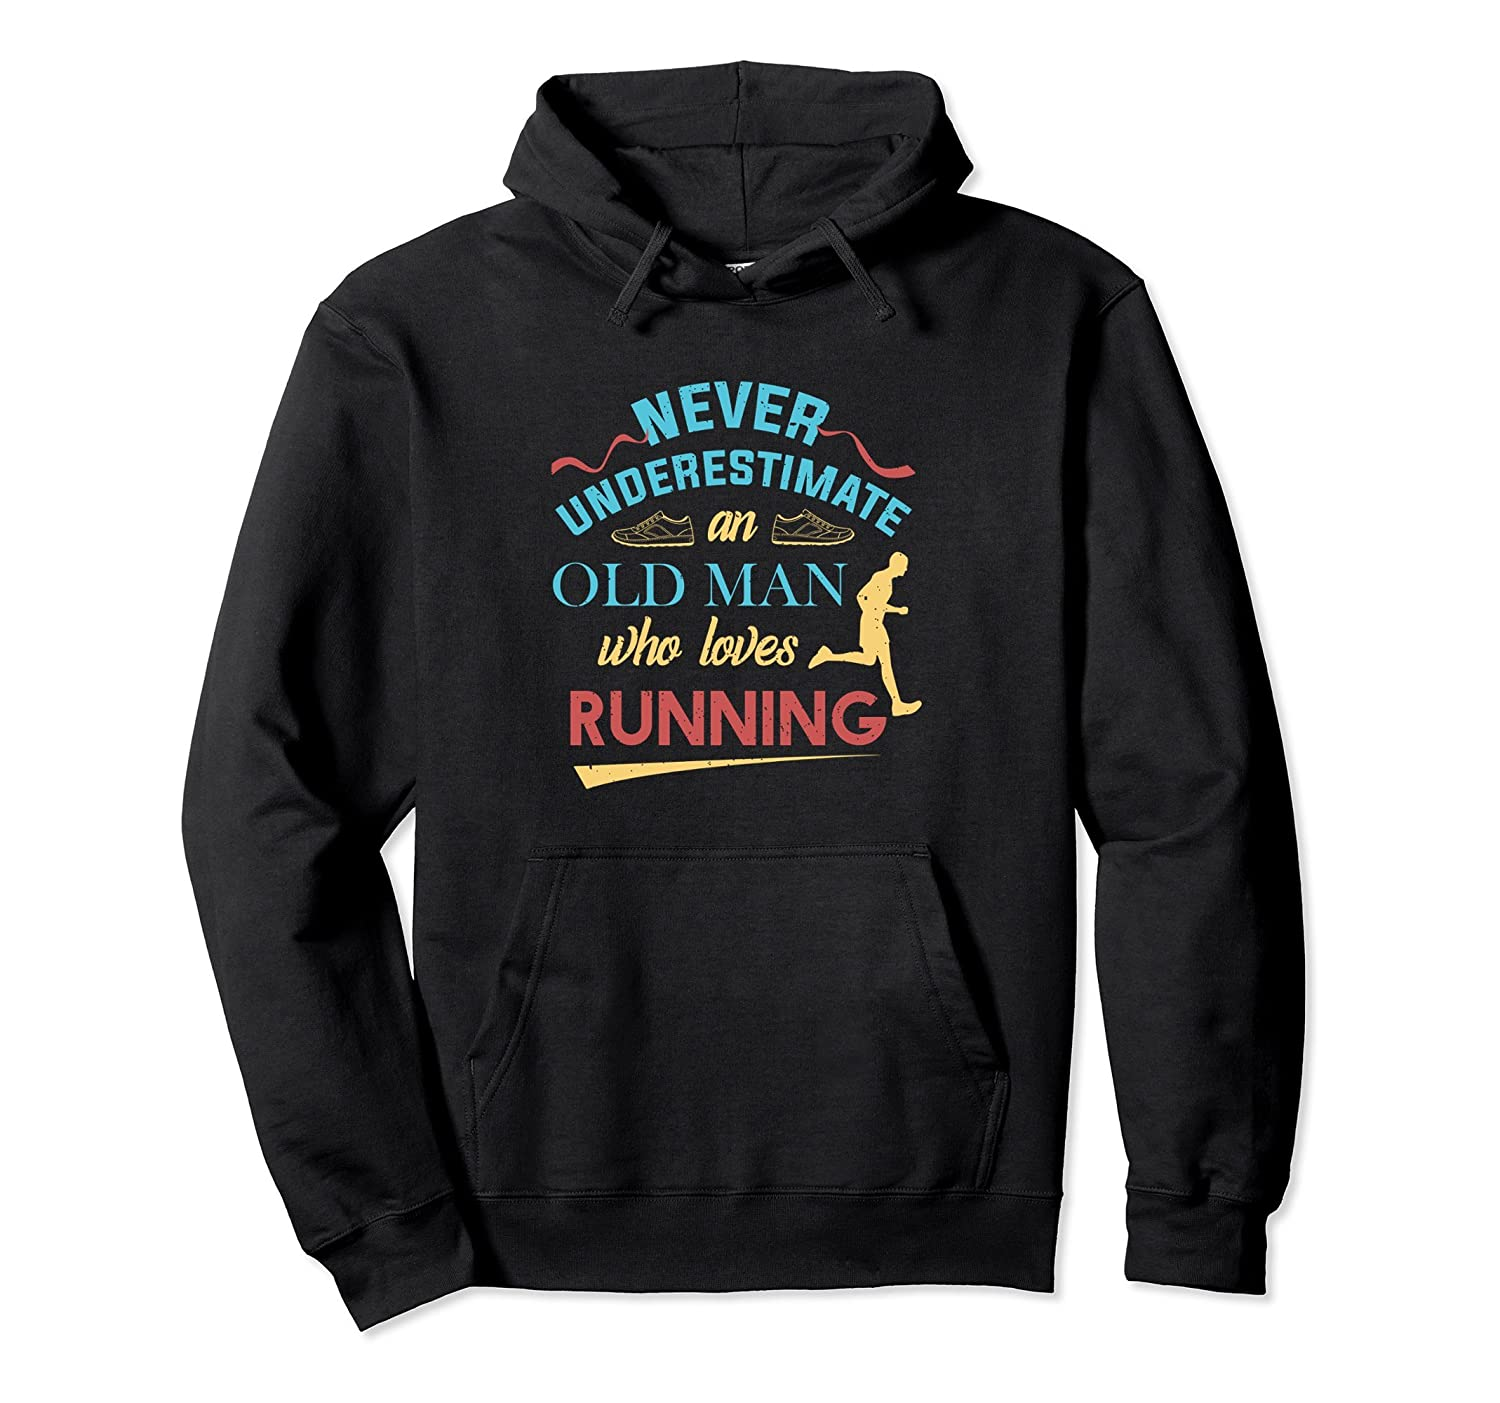 Funny Runner Gifts Old Man Loves To Run Dad Grandpa Hoodie-ah my shirt one  sc 1 st  Ahmyshirt & Funny Runner Gifts Old Man Loves To Run Dad Grandpa Hoodie-ah my ...